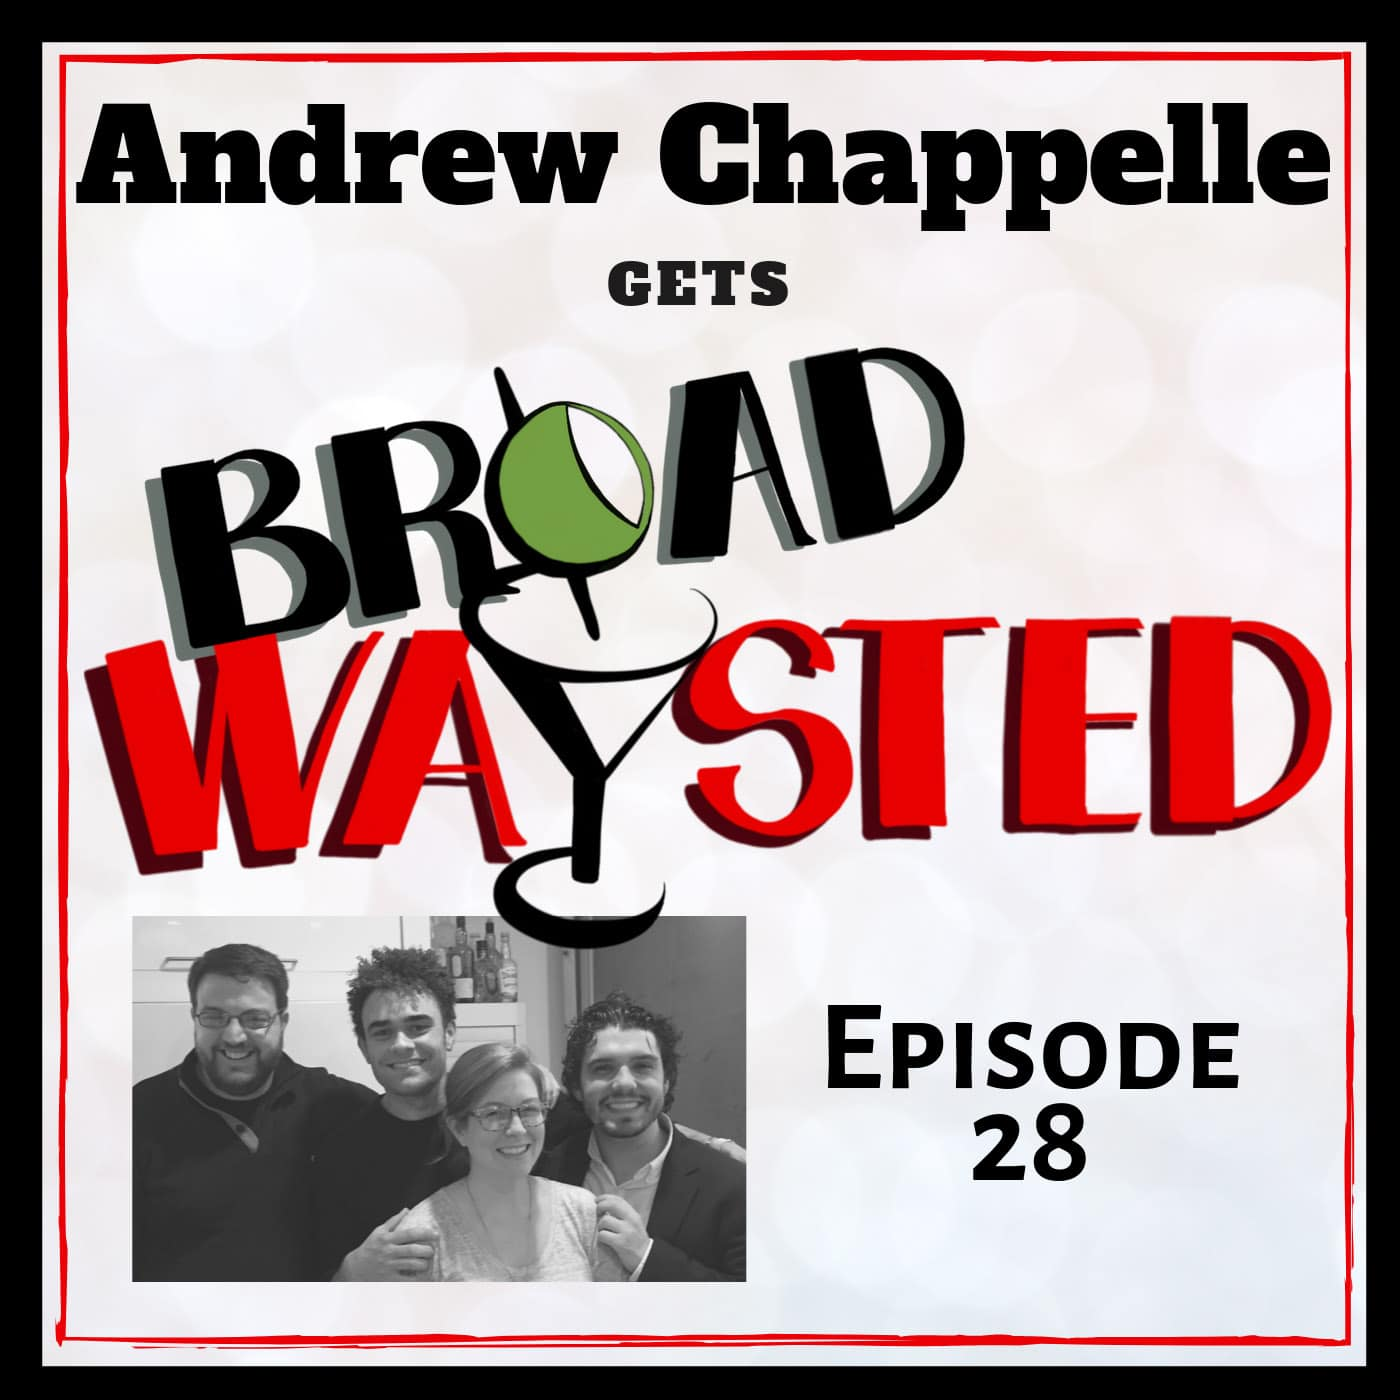 Broadwaysted Ep 28 Andrew Chappelle